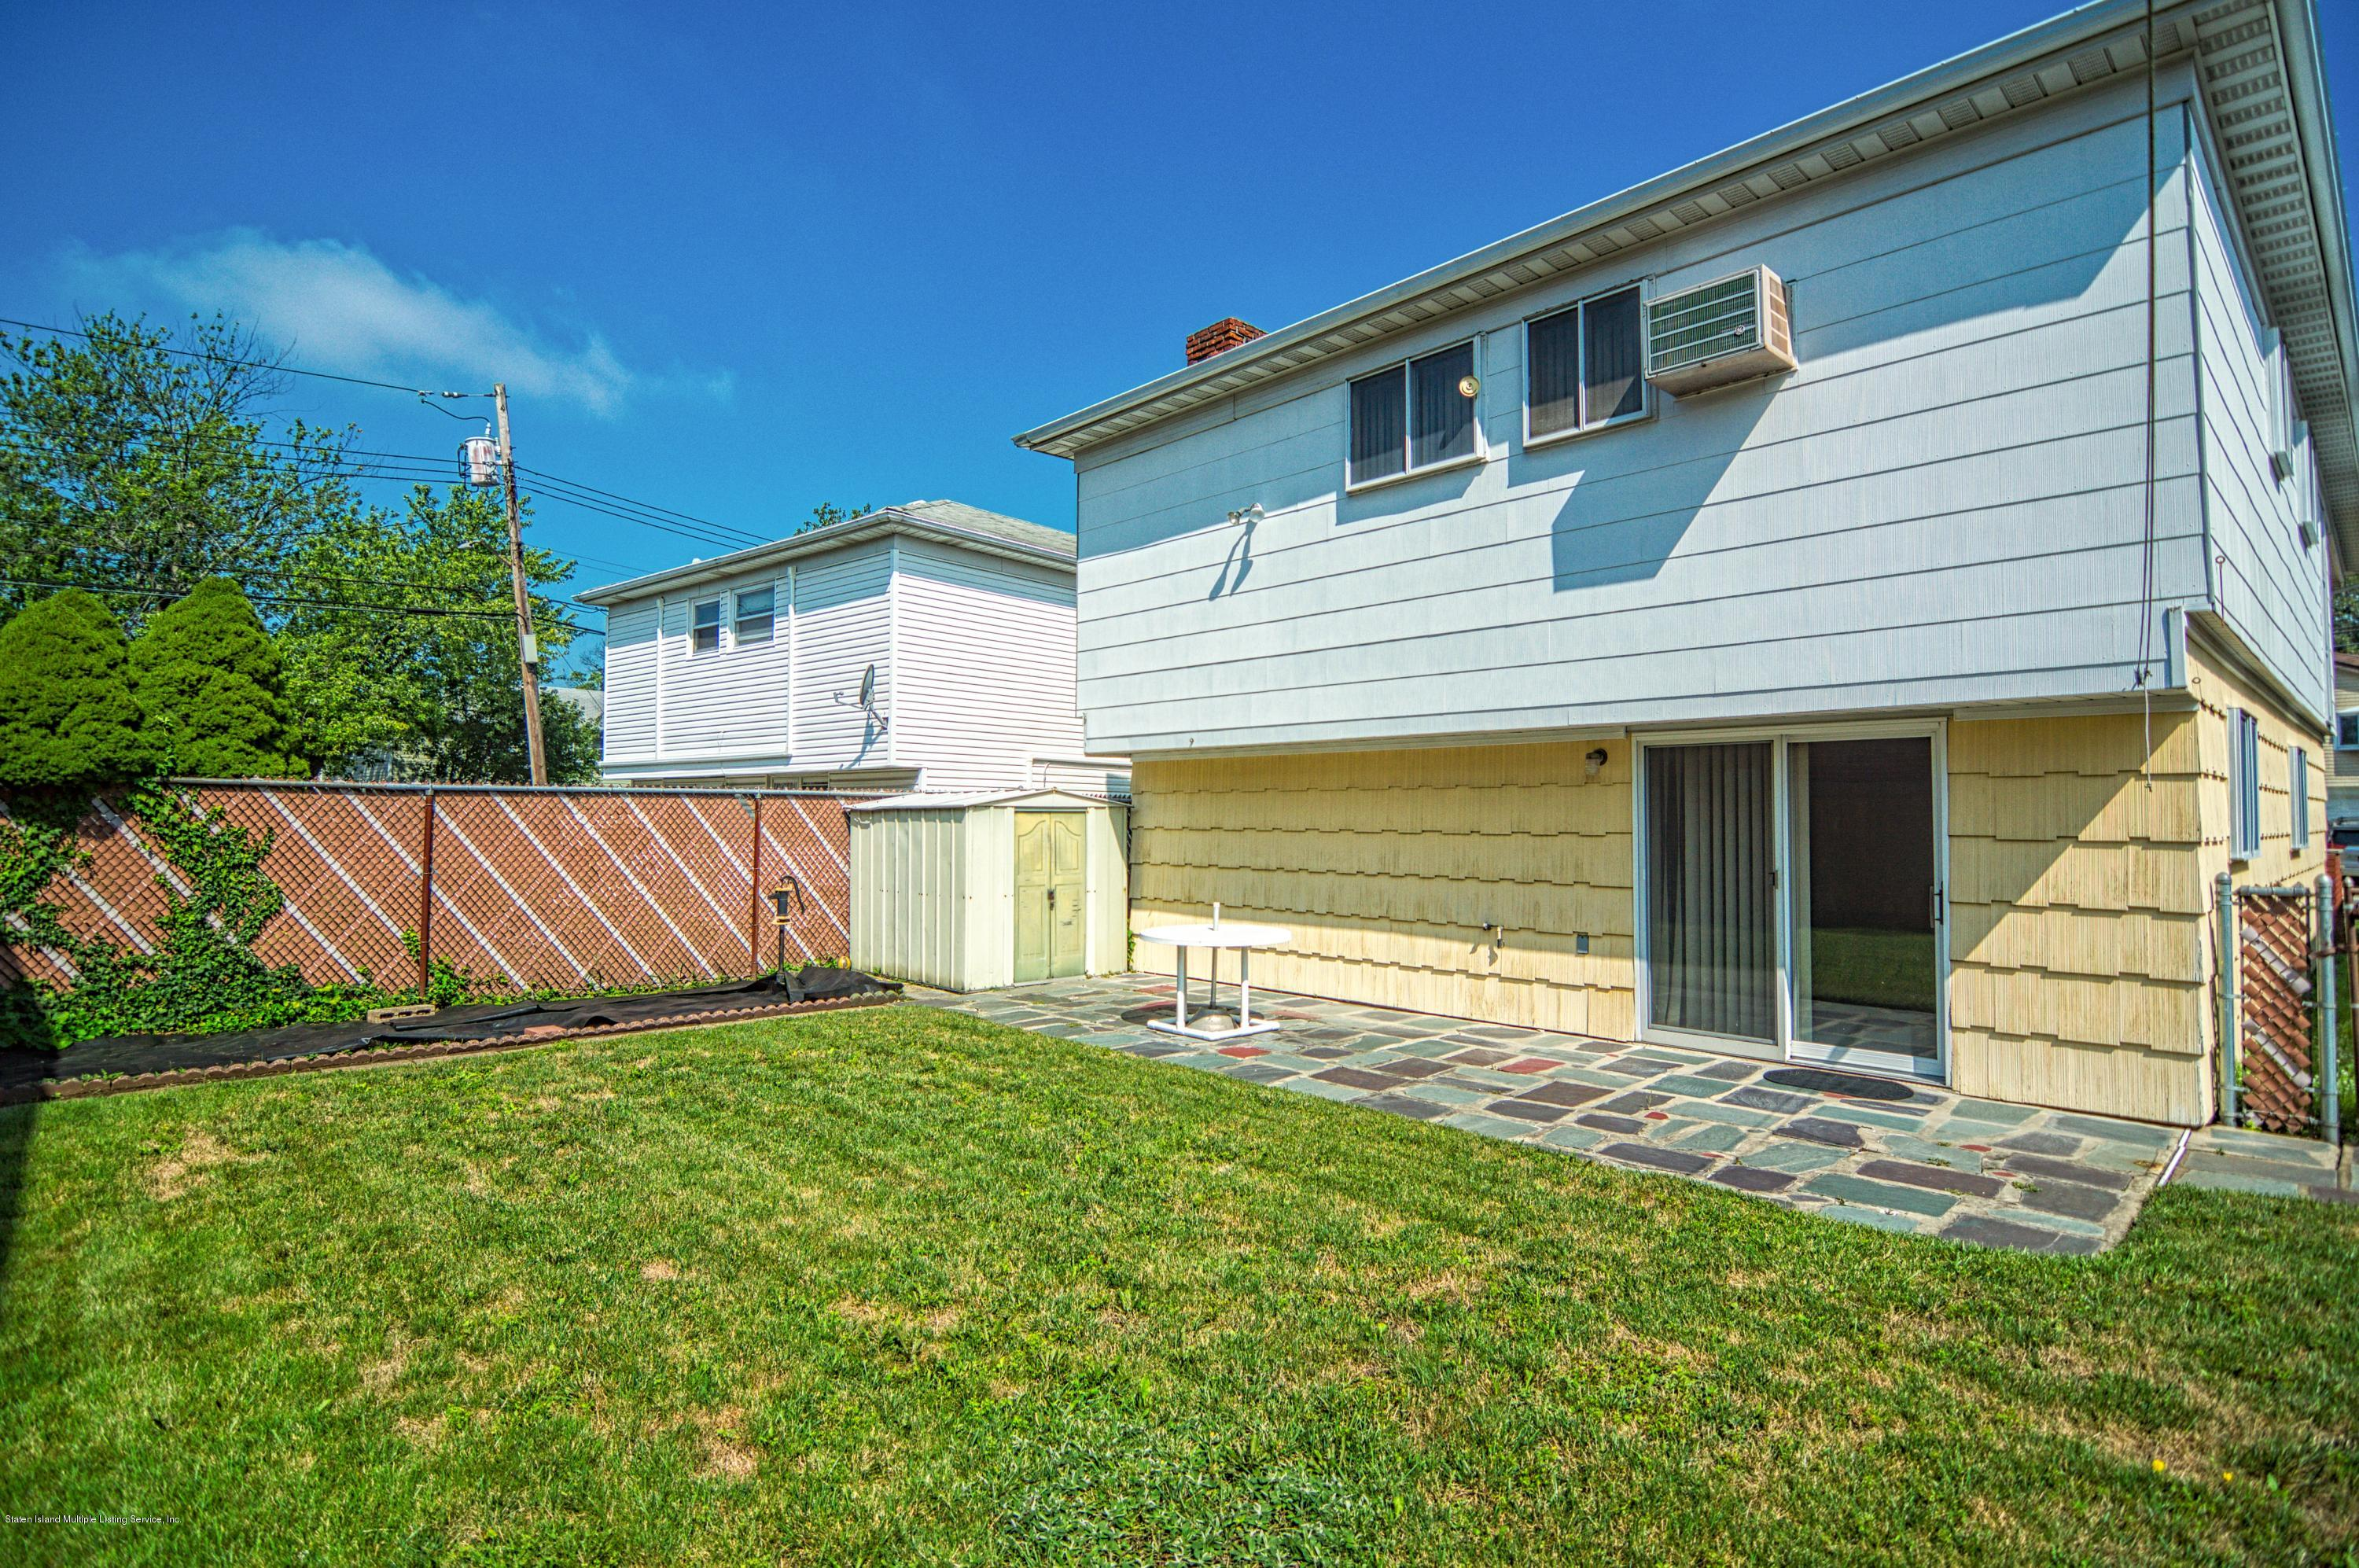 Single Family - Detached 124 Queen Street  Staten Island, NY 10314, MLS-1131413-18